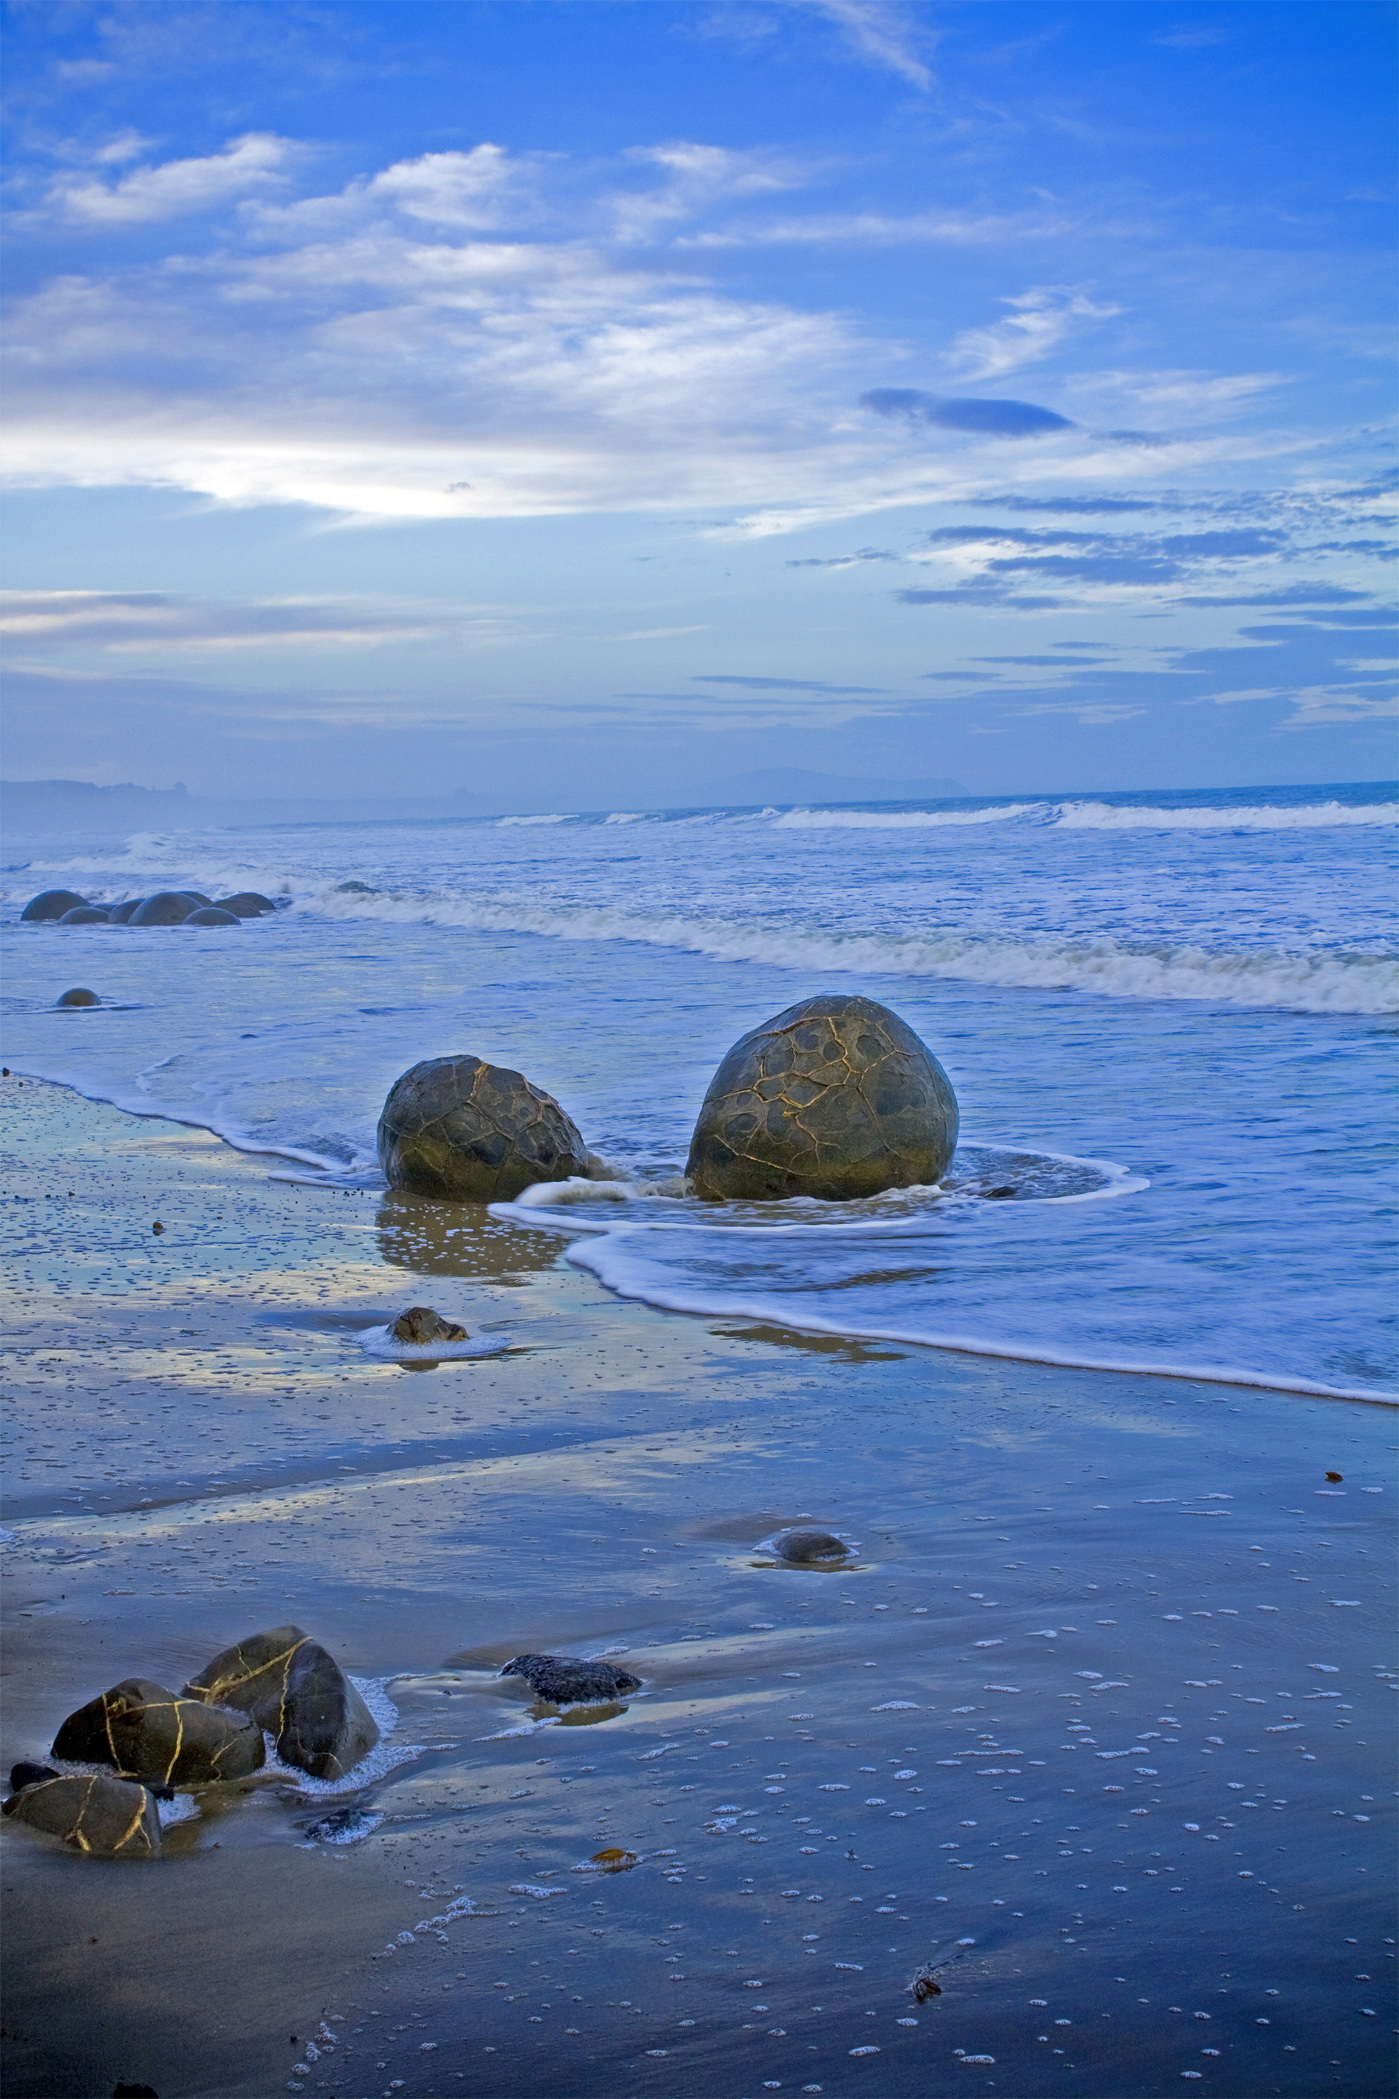 New Zealand Beach Boulders - Blue Theme - Photo 2